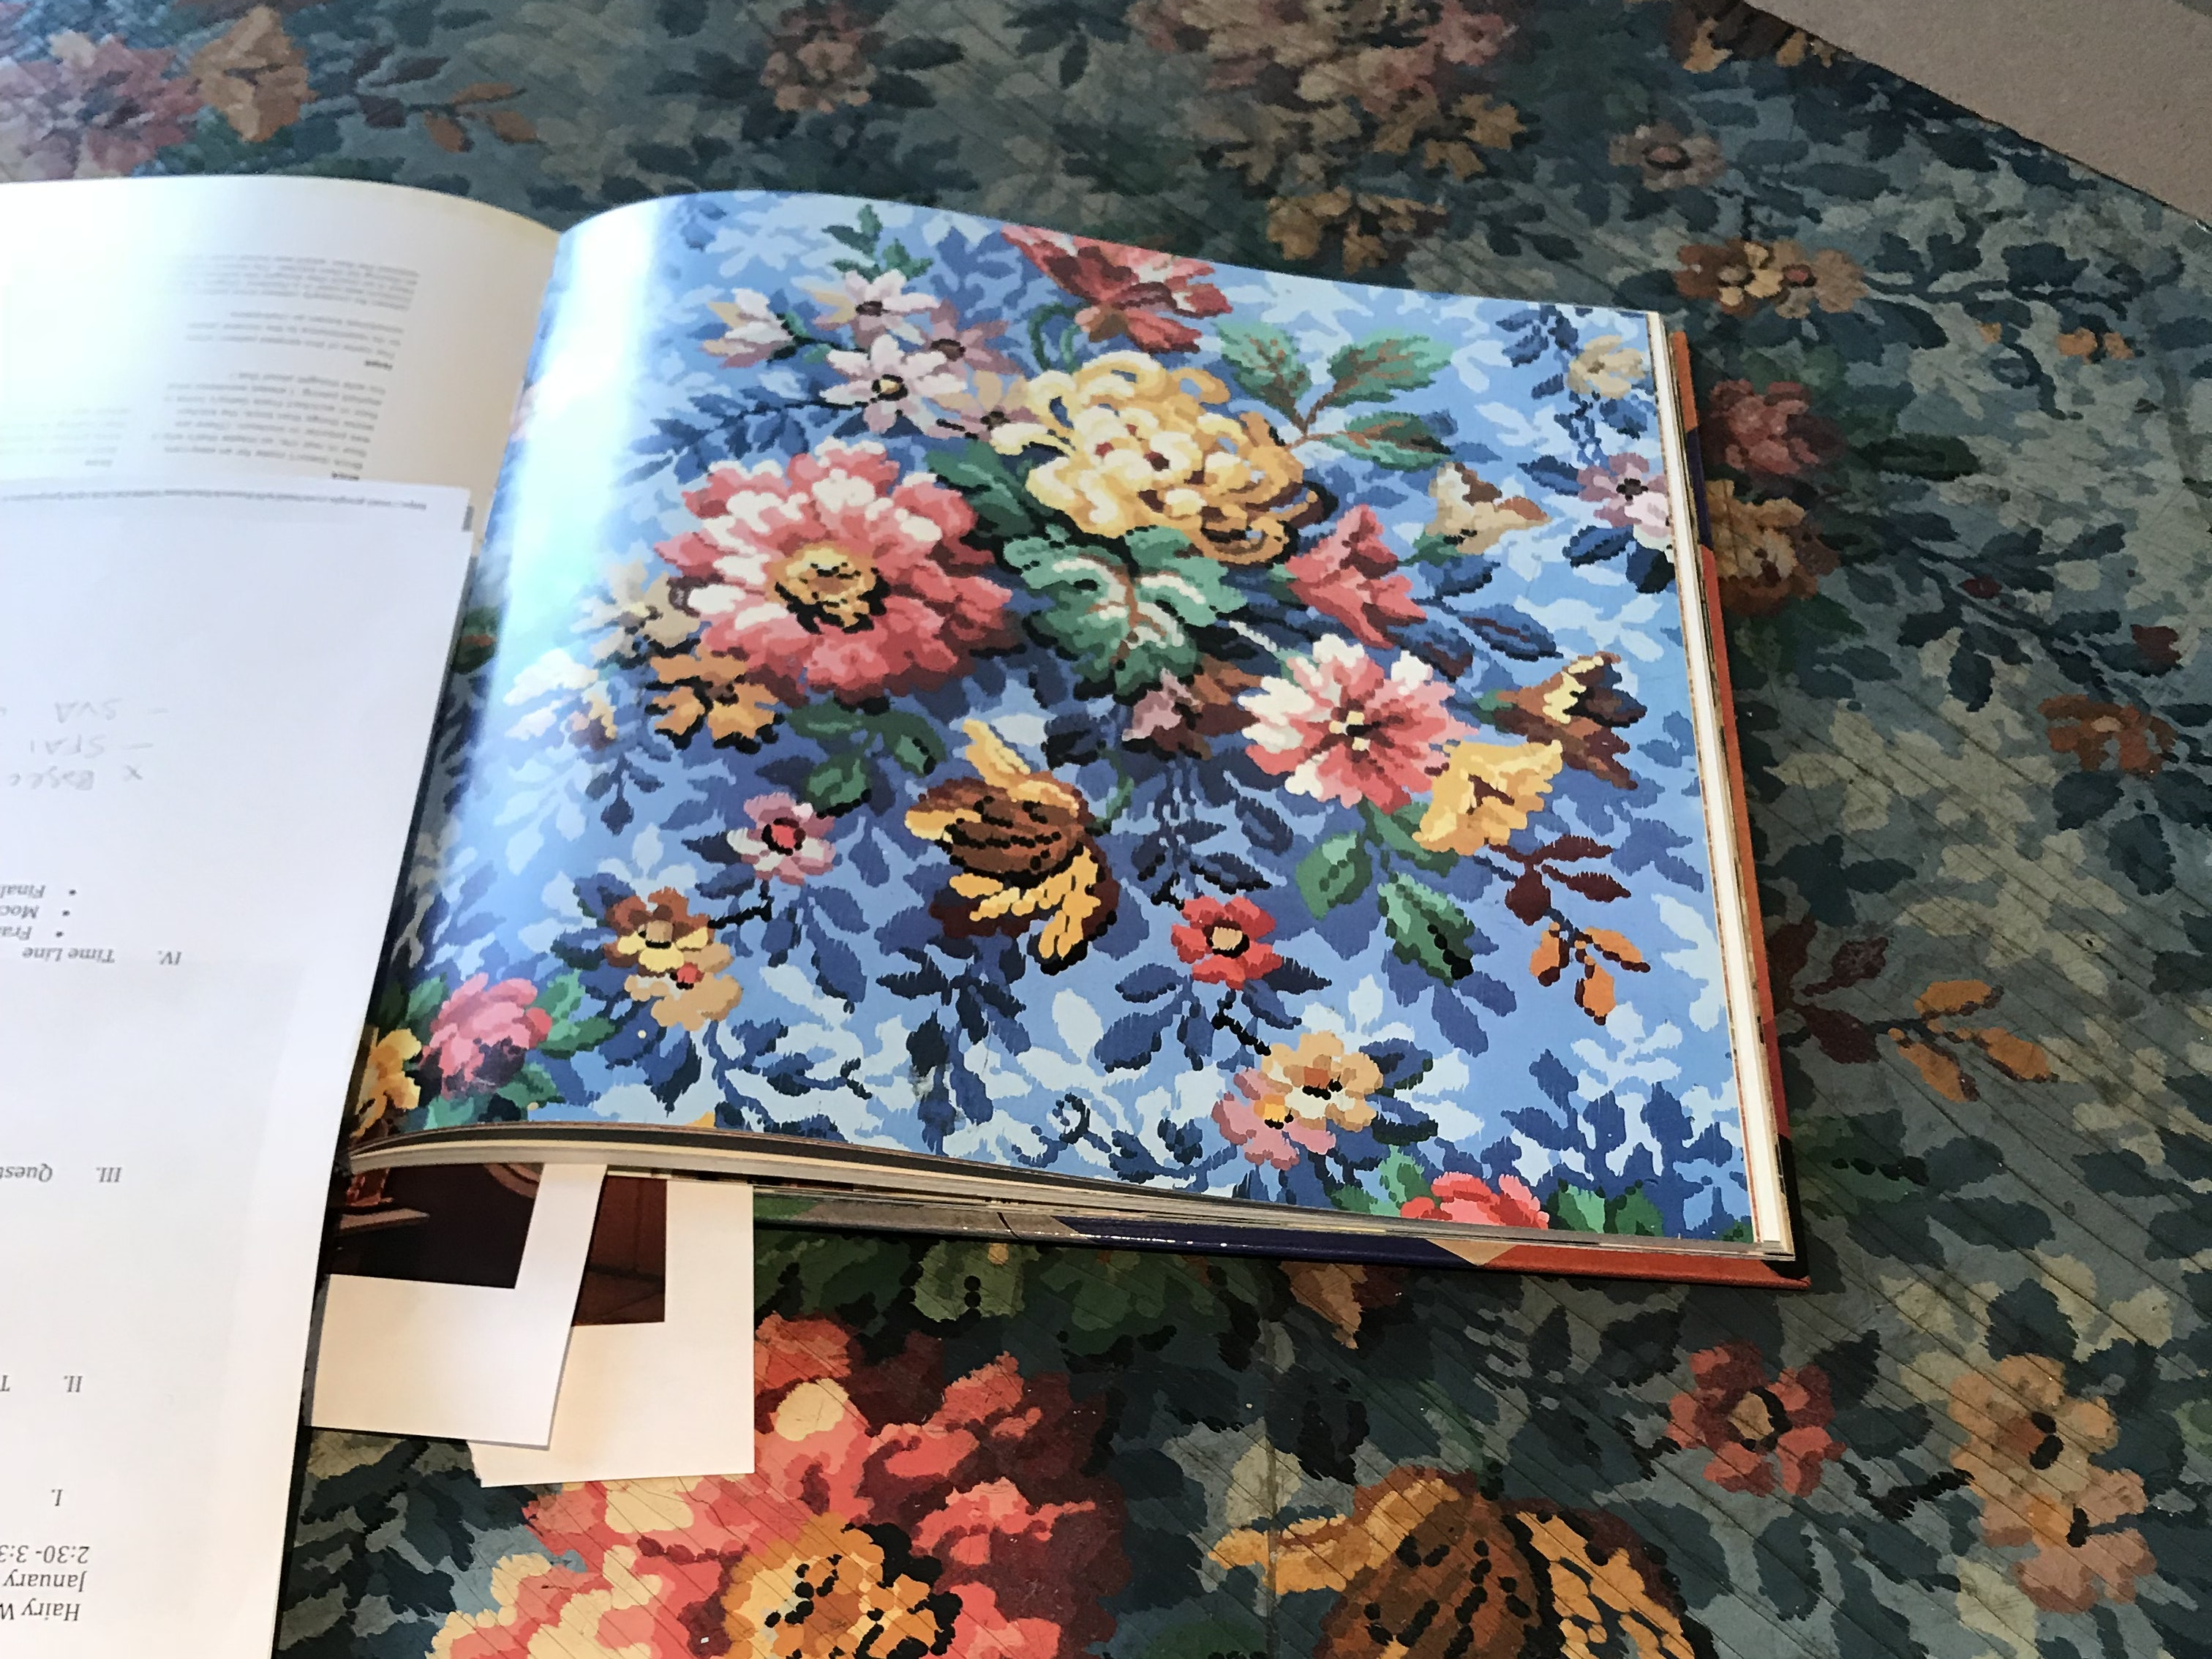 Image from book laid next to matching linoleum on floor